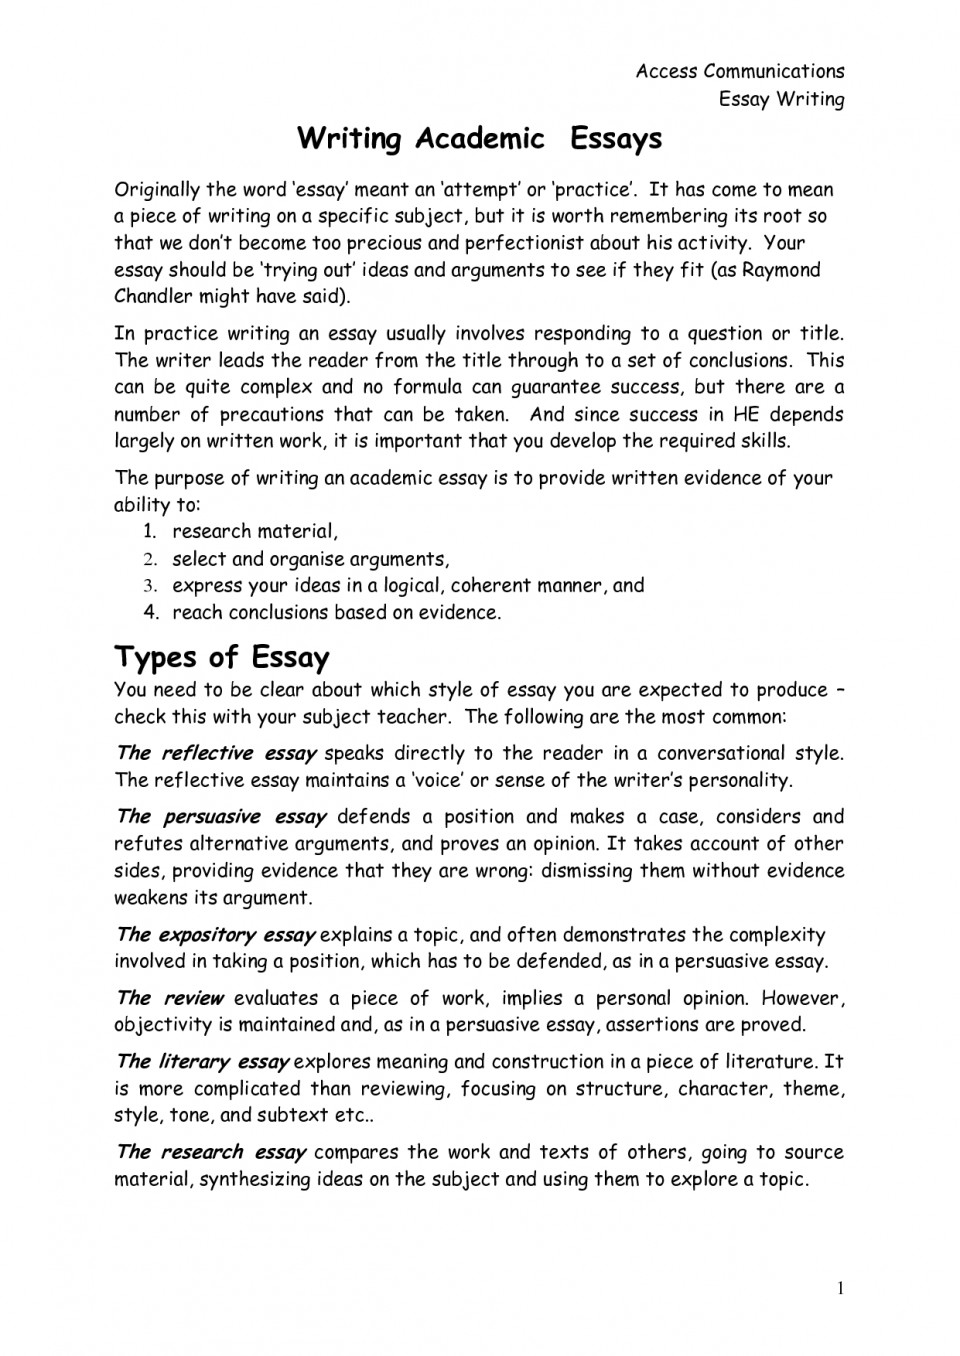 016 Reflective Essay On Academic Writings Beautiful Examples For Middle School Apa High 960